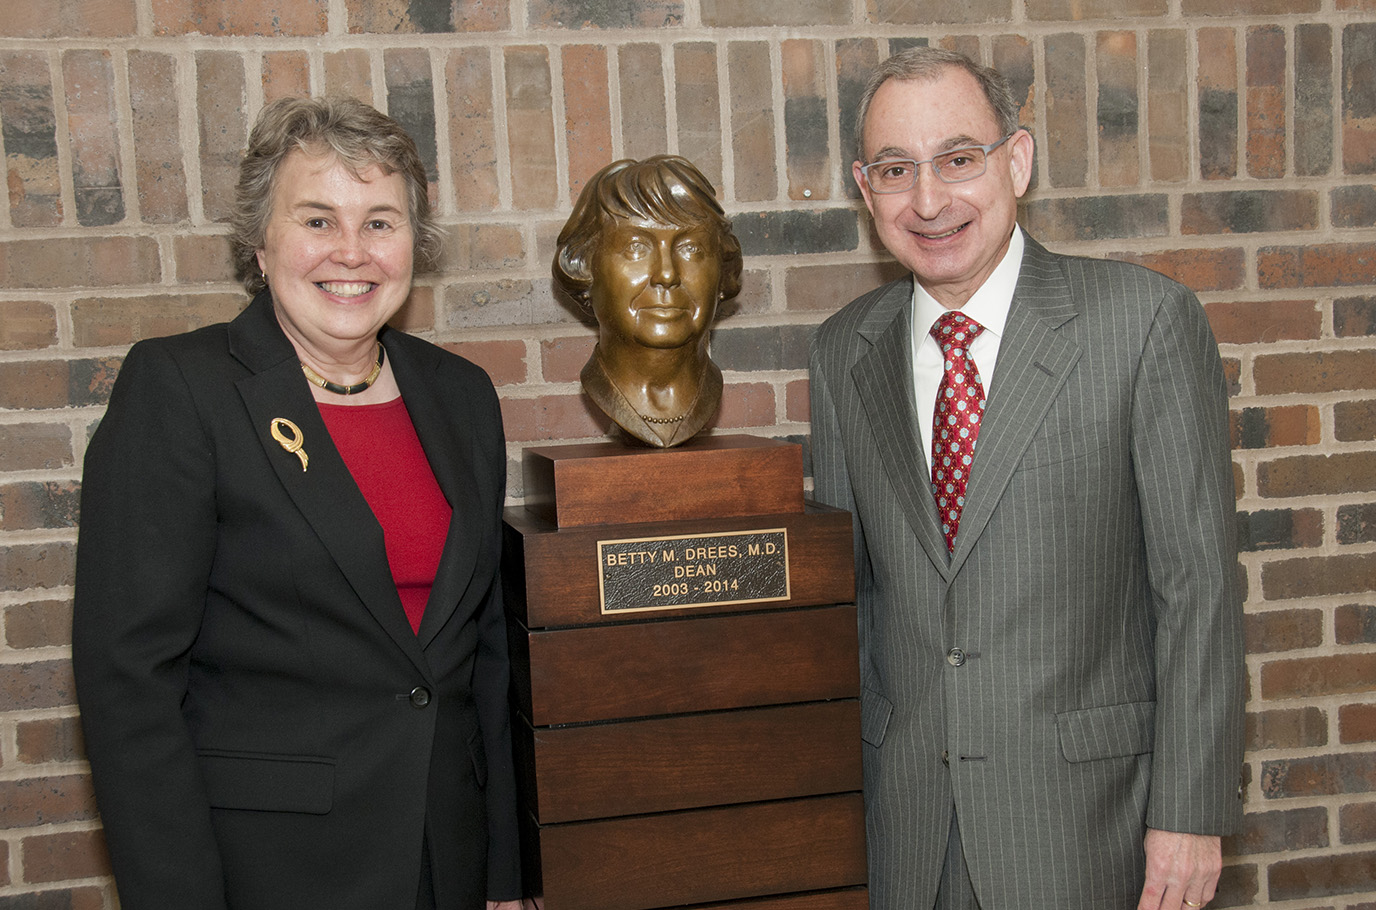 Betty M. Drees, M.D., left, and Dean Steven Kanter, M.D., pose with a bronze sculpture to commemorate her tenure as dean of the School of Medicine.